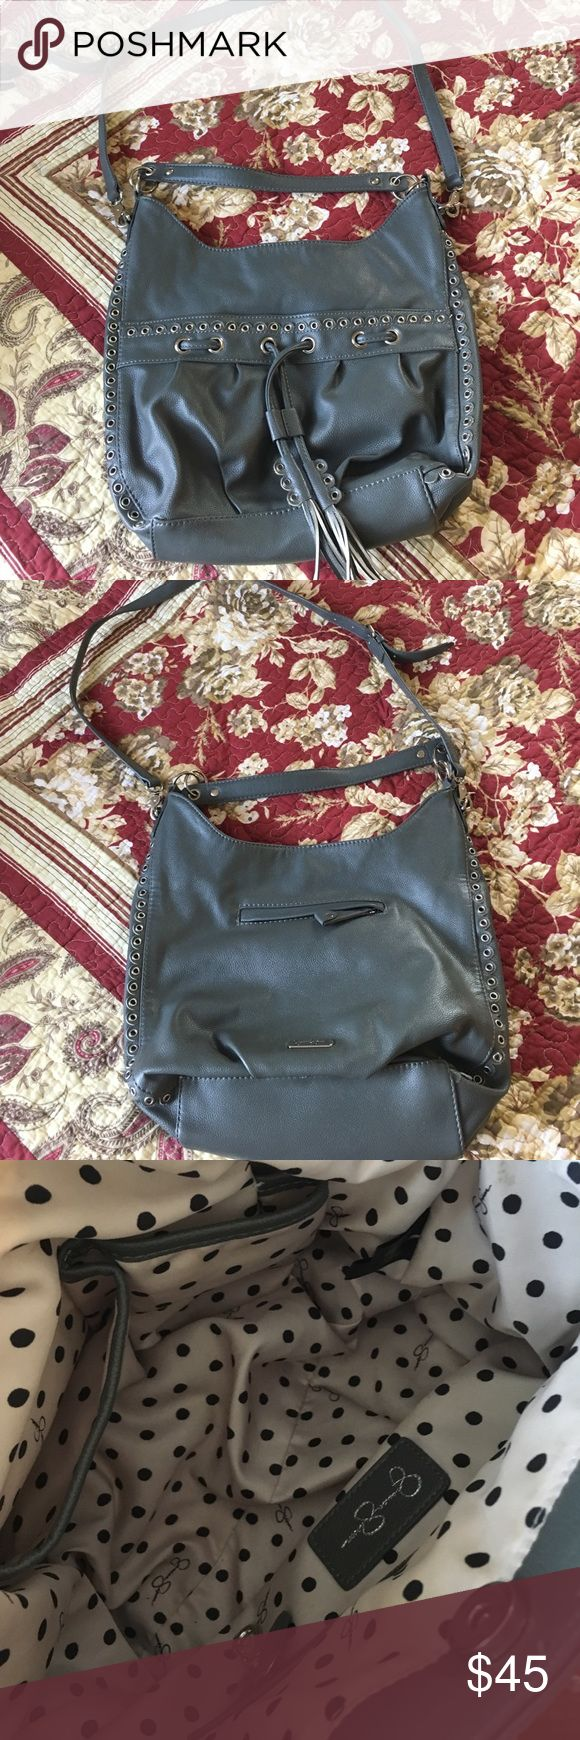 Jessica Simpson Handbag Gray Jessica Simpson handbag. Gray hand bag with shorter, over the shoulder strap and longer, removable cross body strap. This bag has 2 outside pockets, and one inside pocket. Handbag also features 2 interior slip pockets and one zipper pocket. Outside has scalloped edges with rivets, which makes it super cute! Excellent condition!! No stains or signs of wear!! Bundle and save 10%. Comment if you have questions or make an offer!! Jessica Simpson Bags Crossbody Bags